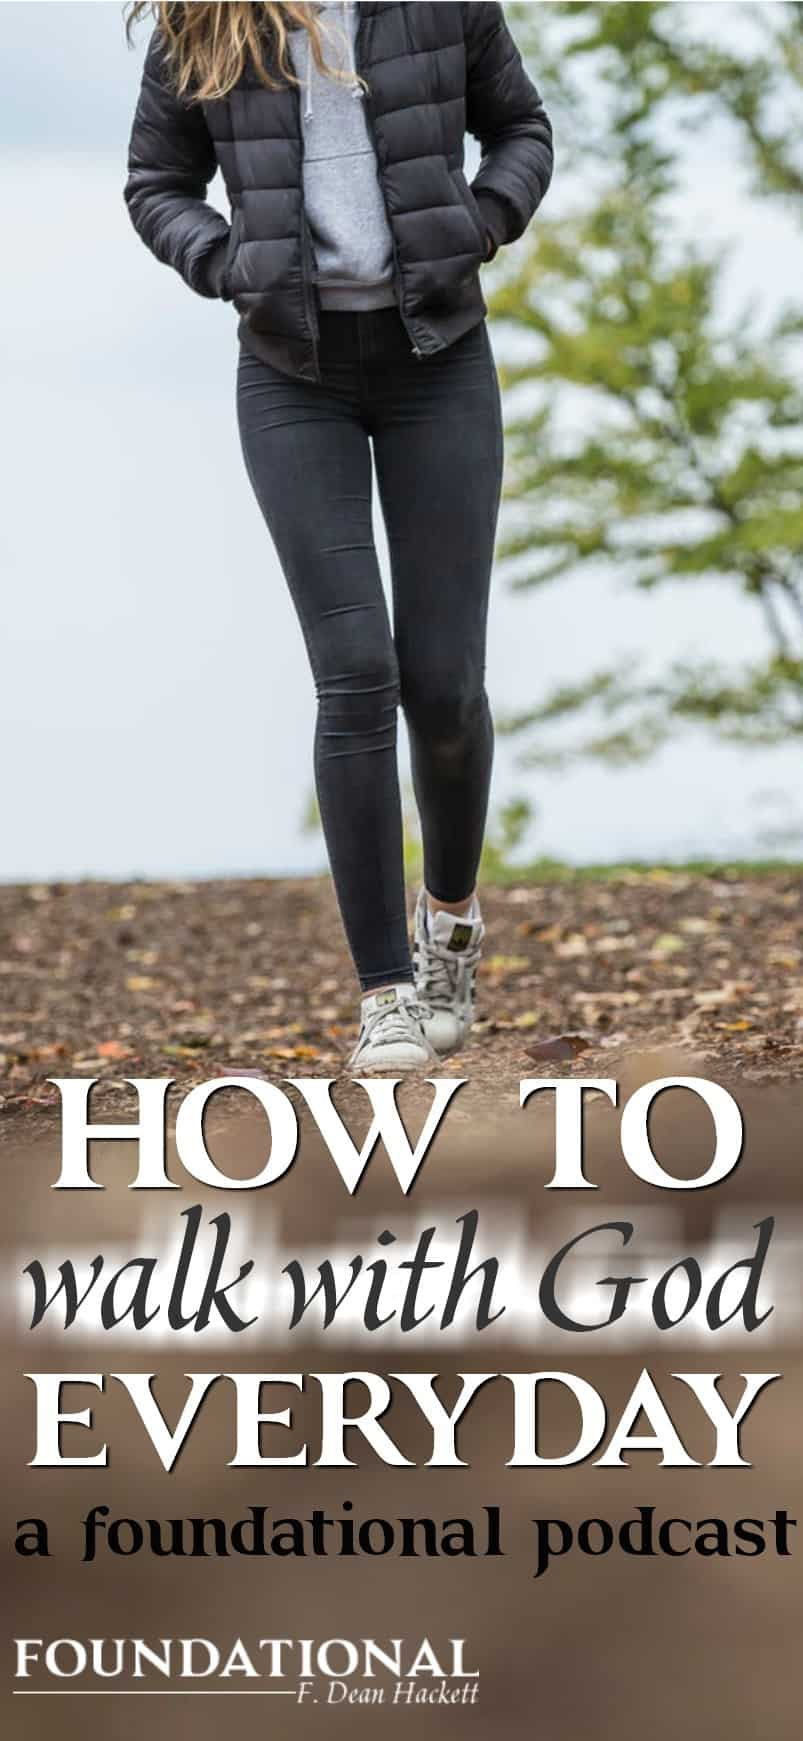 We can have a shallow relationship with God or we can dwell in His presence everyday. The answer is in today's podcast.   Foundational   F. Dean Hackett   Christianity   Christian living   Christian blog   Christian faith   Walk With God   #christianblog #christianfaith #christianliving #spiritualgrowth #Bible #God